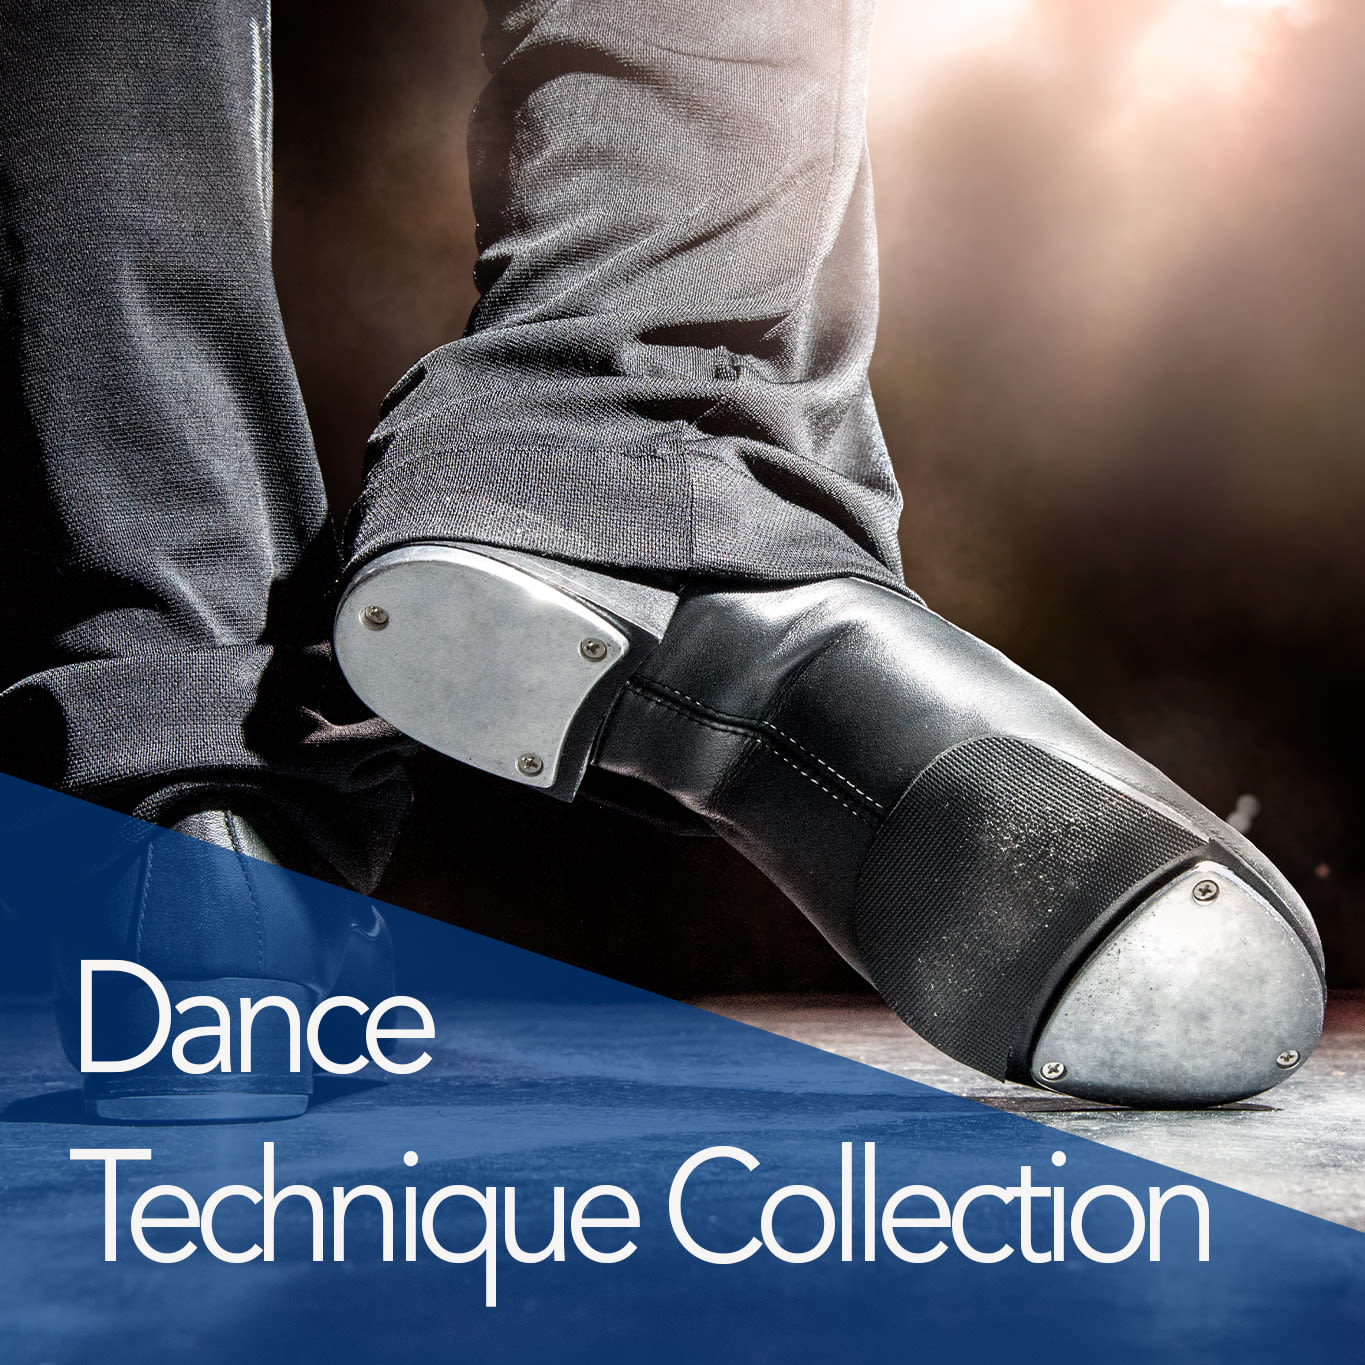 Browse the Human Kinetics Dance Technique collection